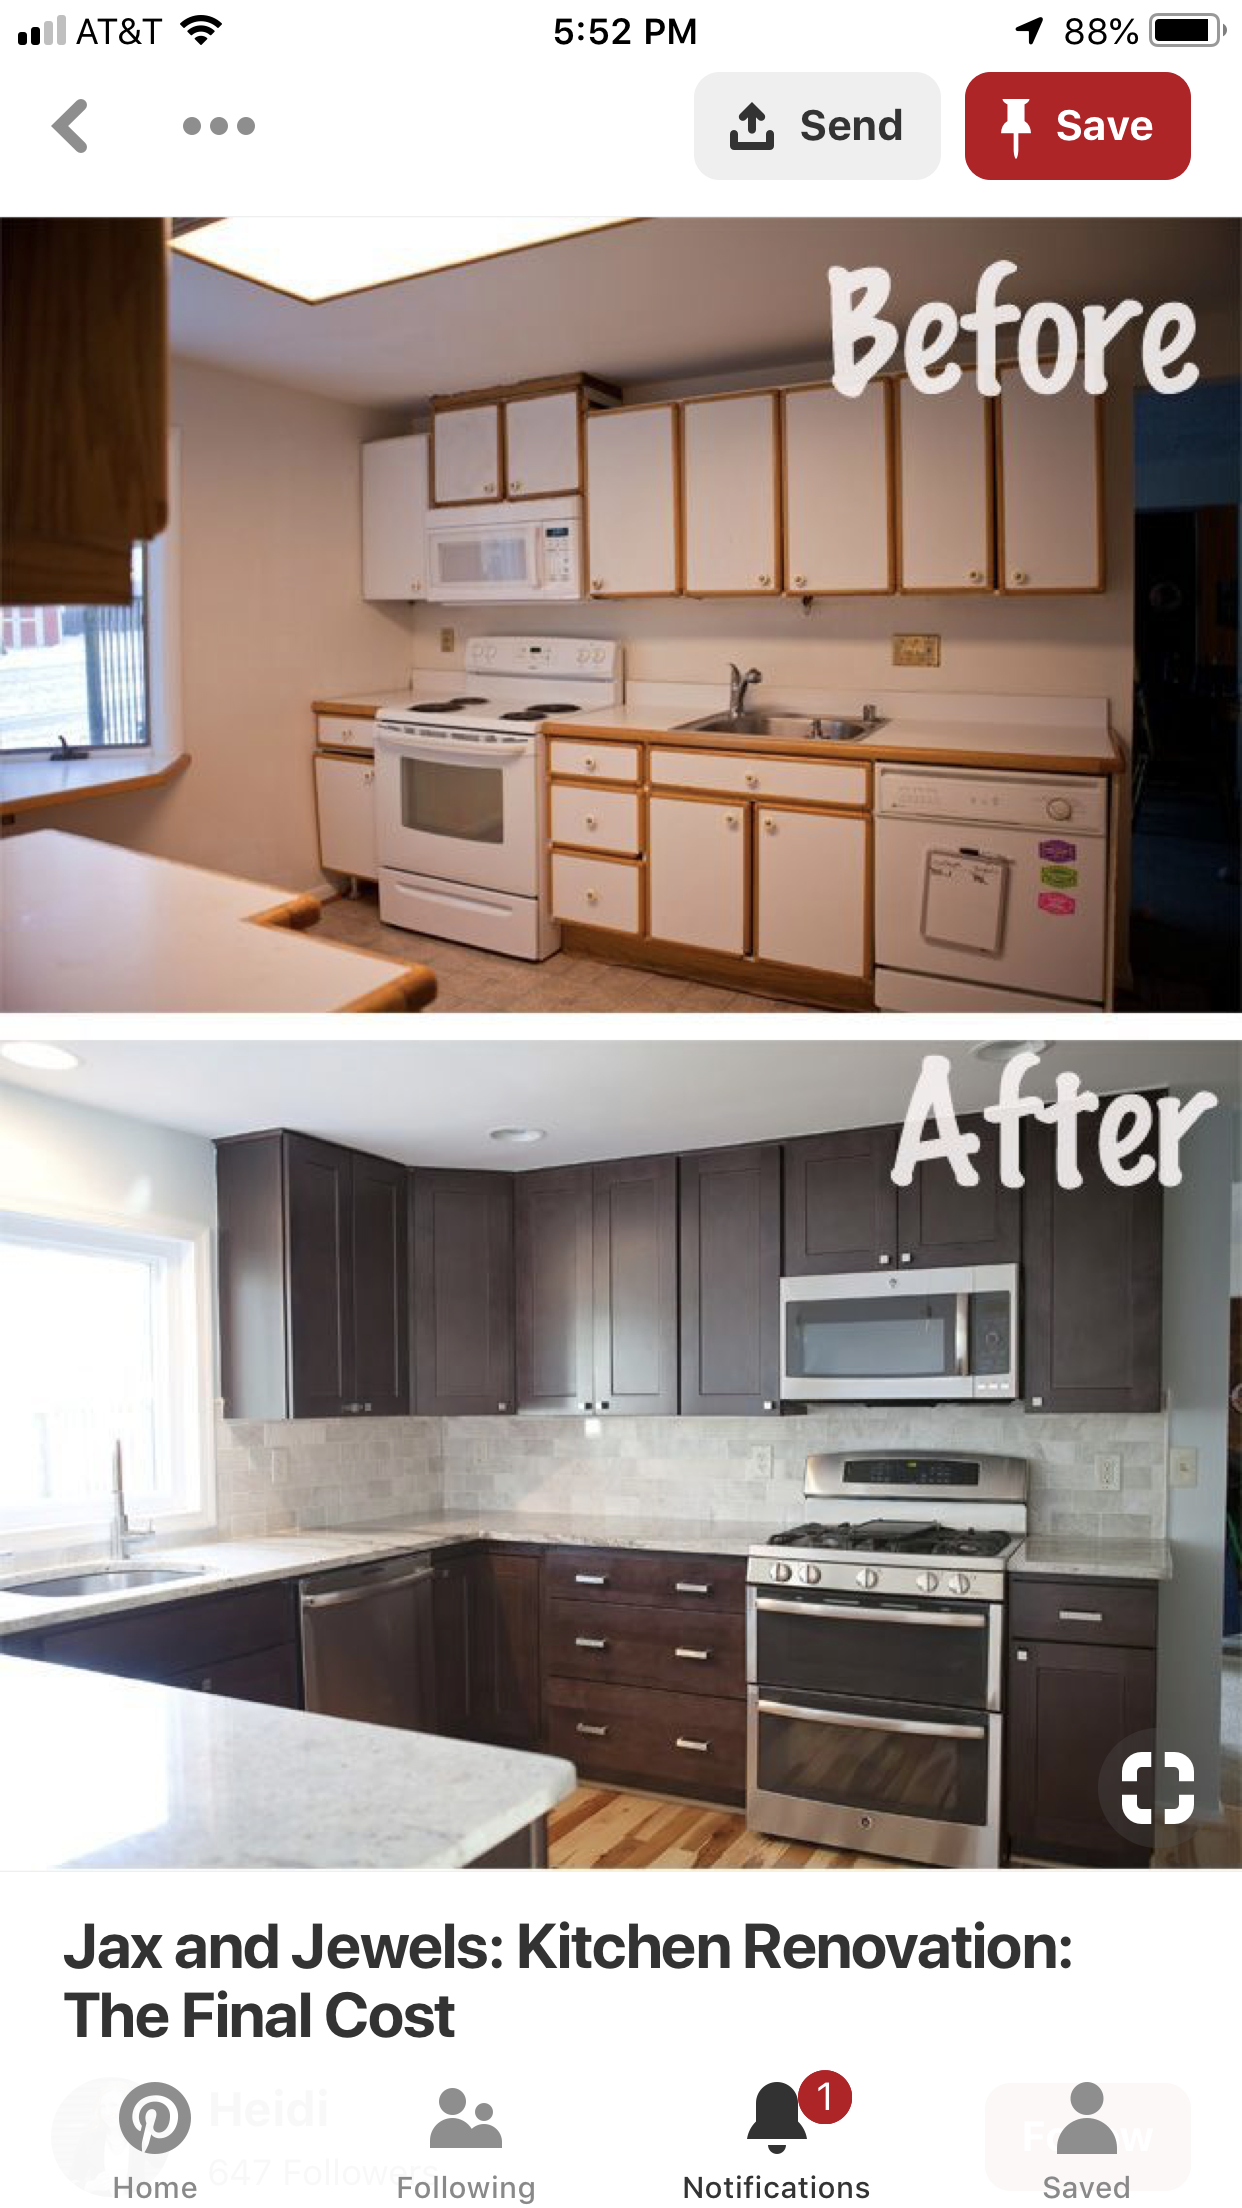 Pin By Jammoulfiesta On Home Remodel Home Remodeling Kitchen Renovation Home